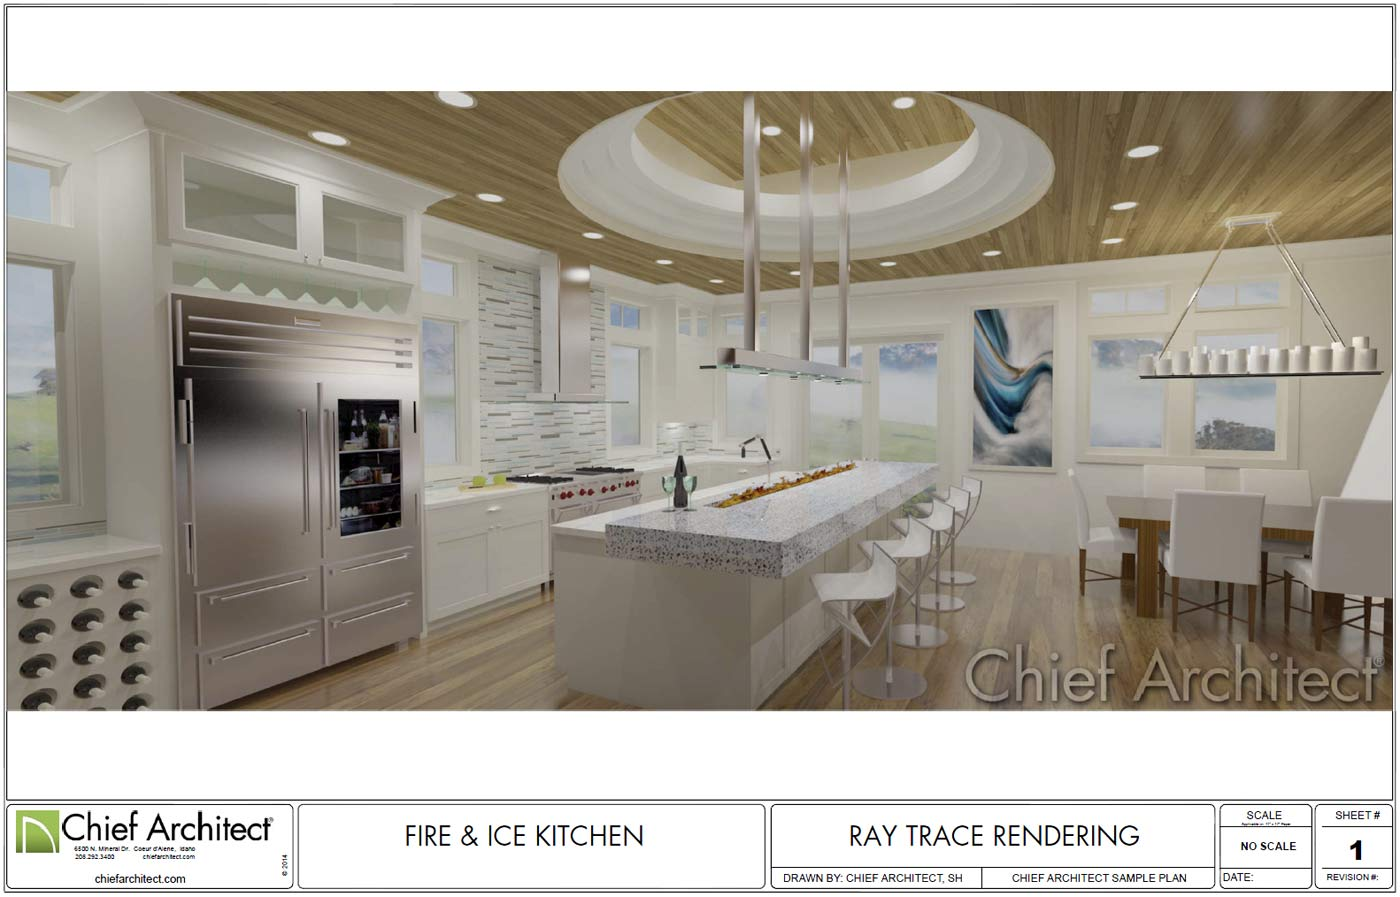 Img Title Fire Ice Kitchen Class U Imagecenter Src Https Cloud Chiefarchitect Com 1 Samples Projects Fire Ice Kitchen Fire Ice Kitchen Thumb Jpg